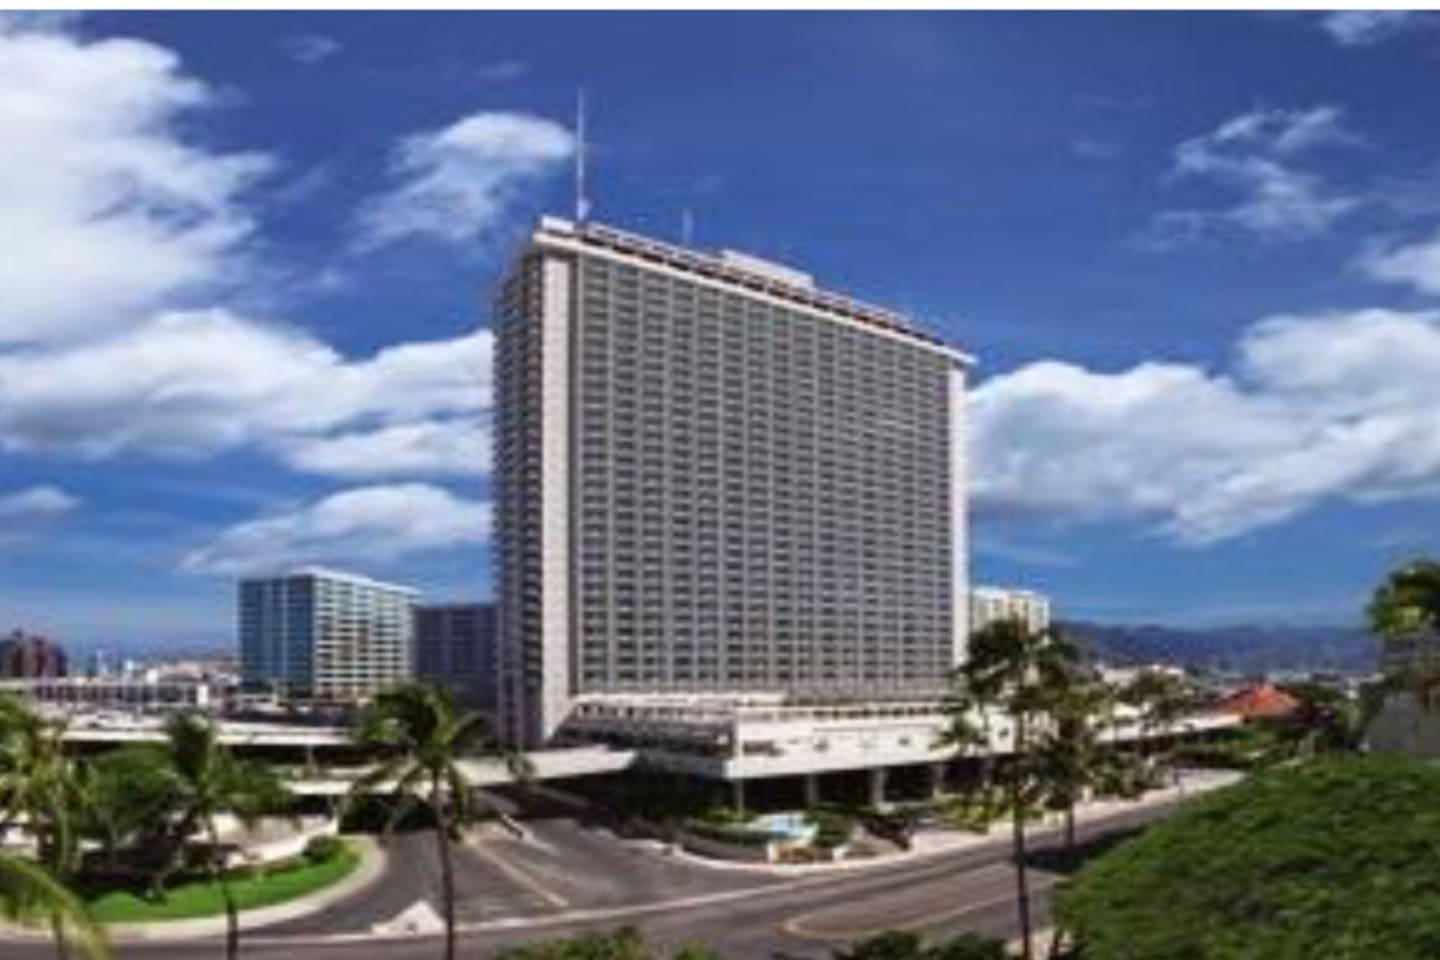 Ala Moana Hotel and Condominium. Parking available located in hotel with fee. Convenient bus line only few walking distance away.